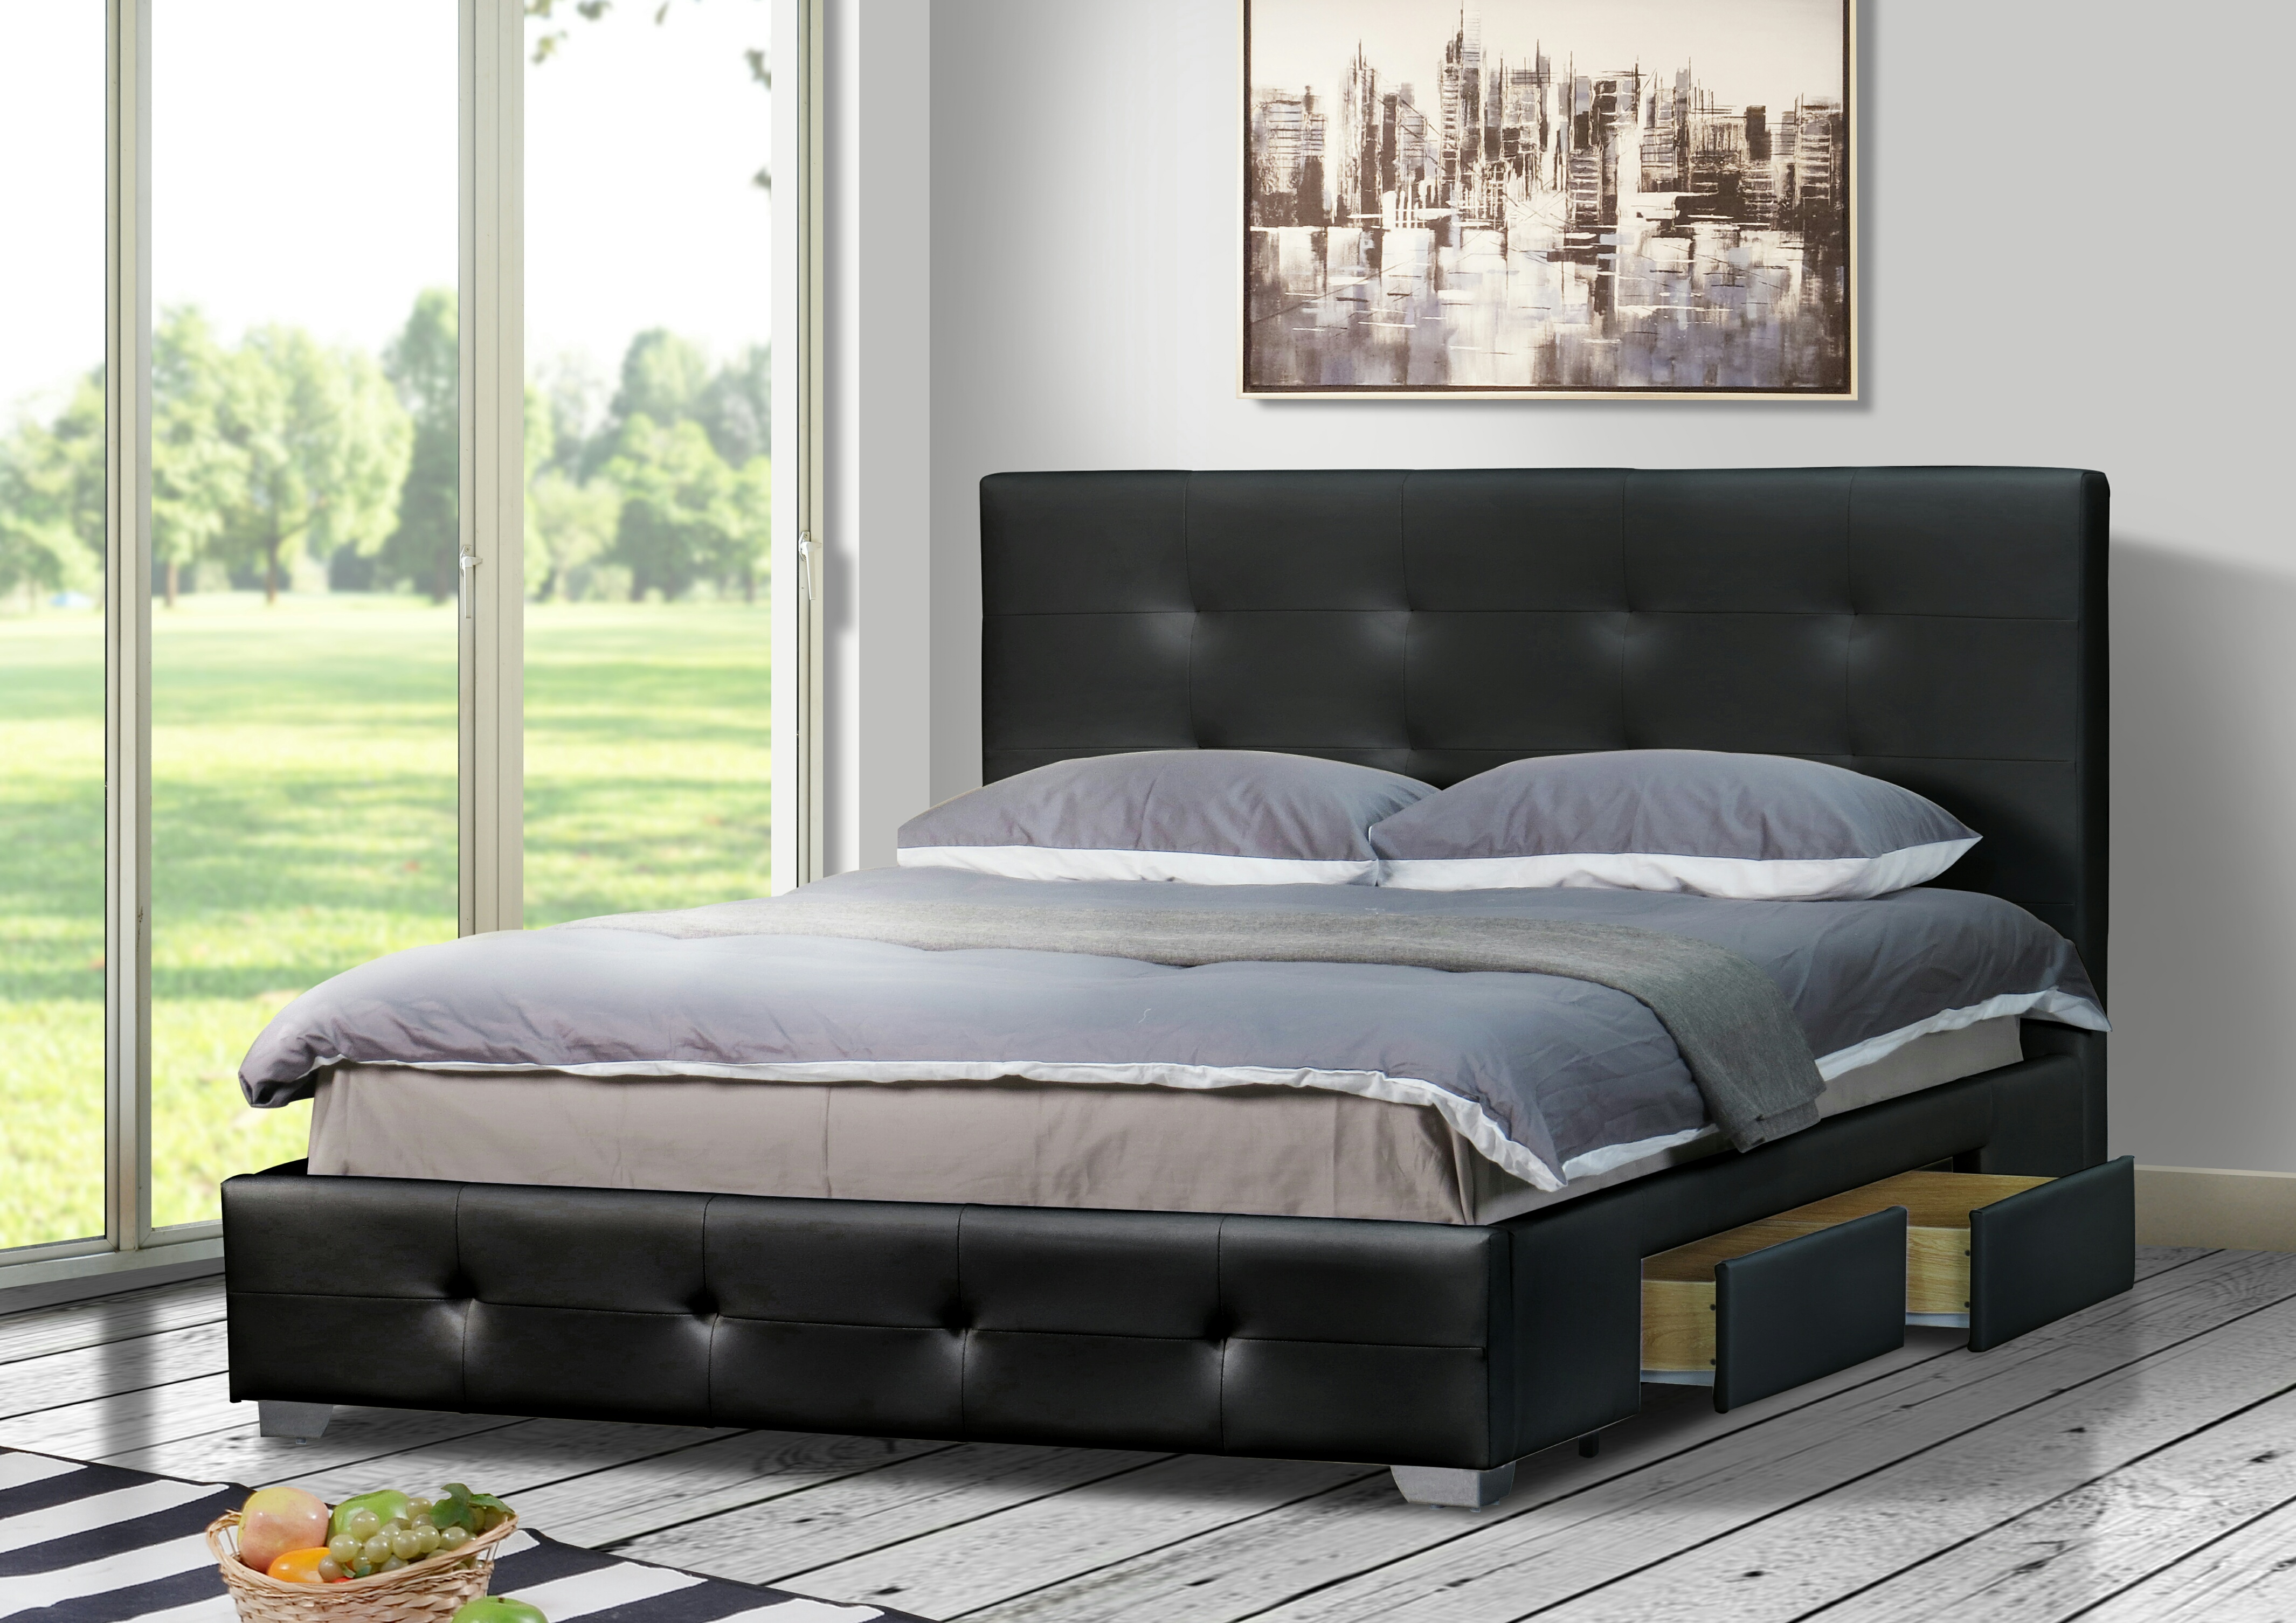 Furniture Osborne Park Online Discount Beds On Sale Perth Bed Shops And Stores